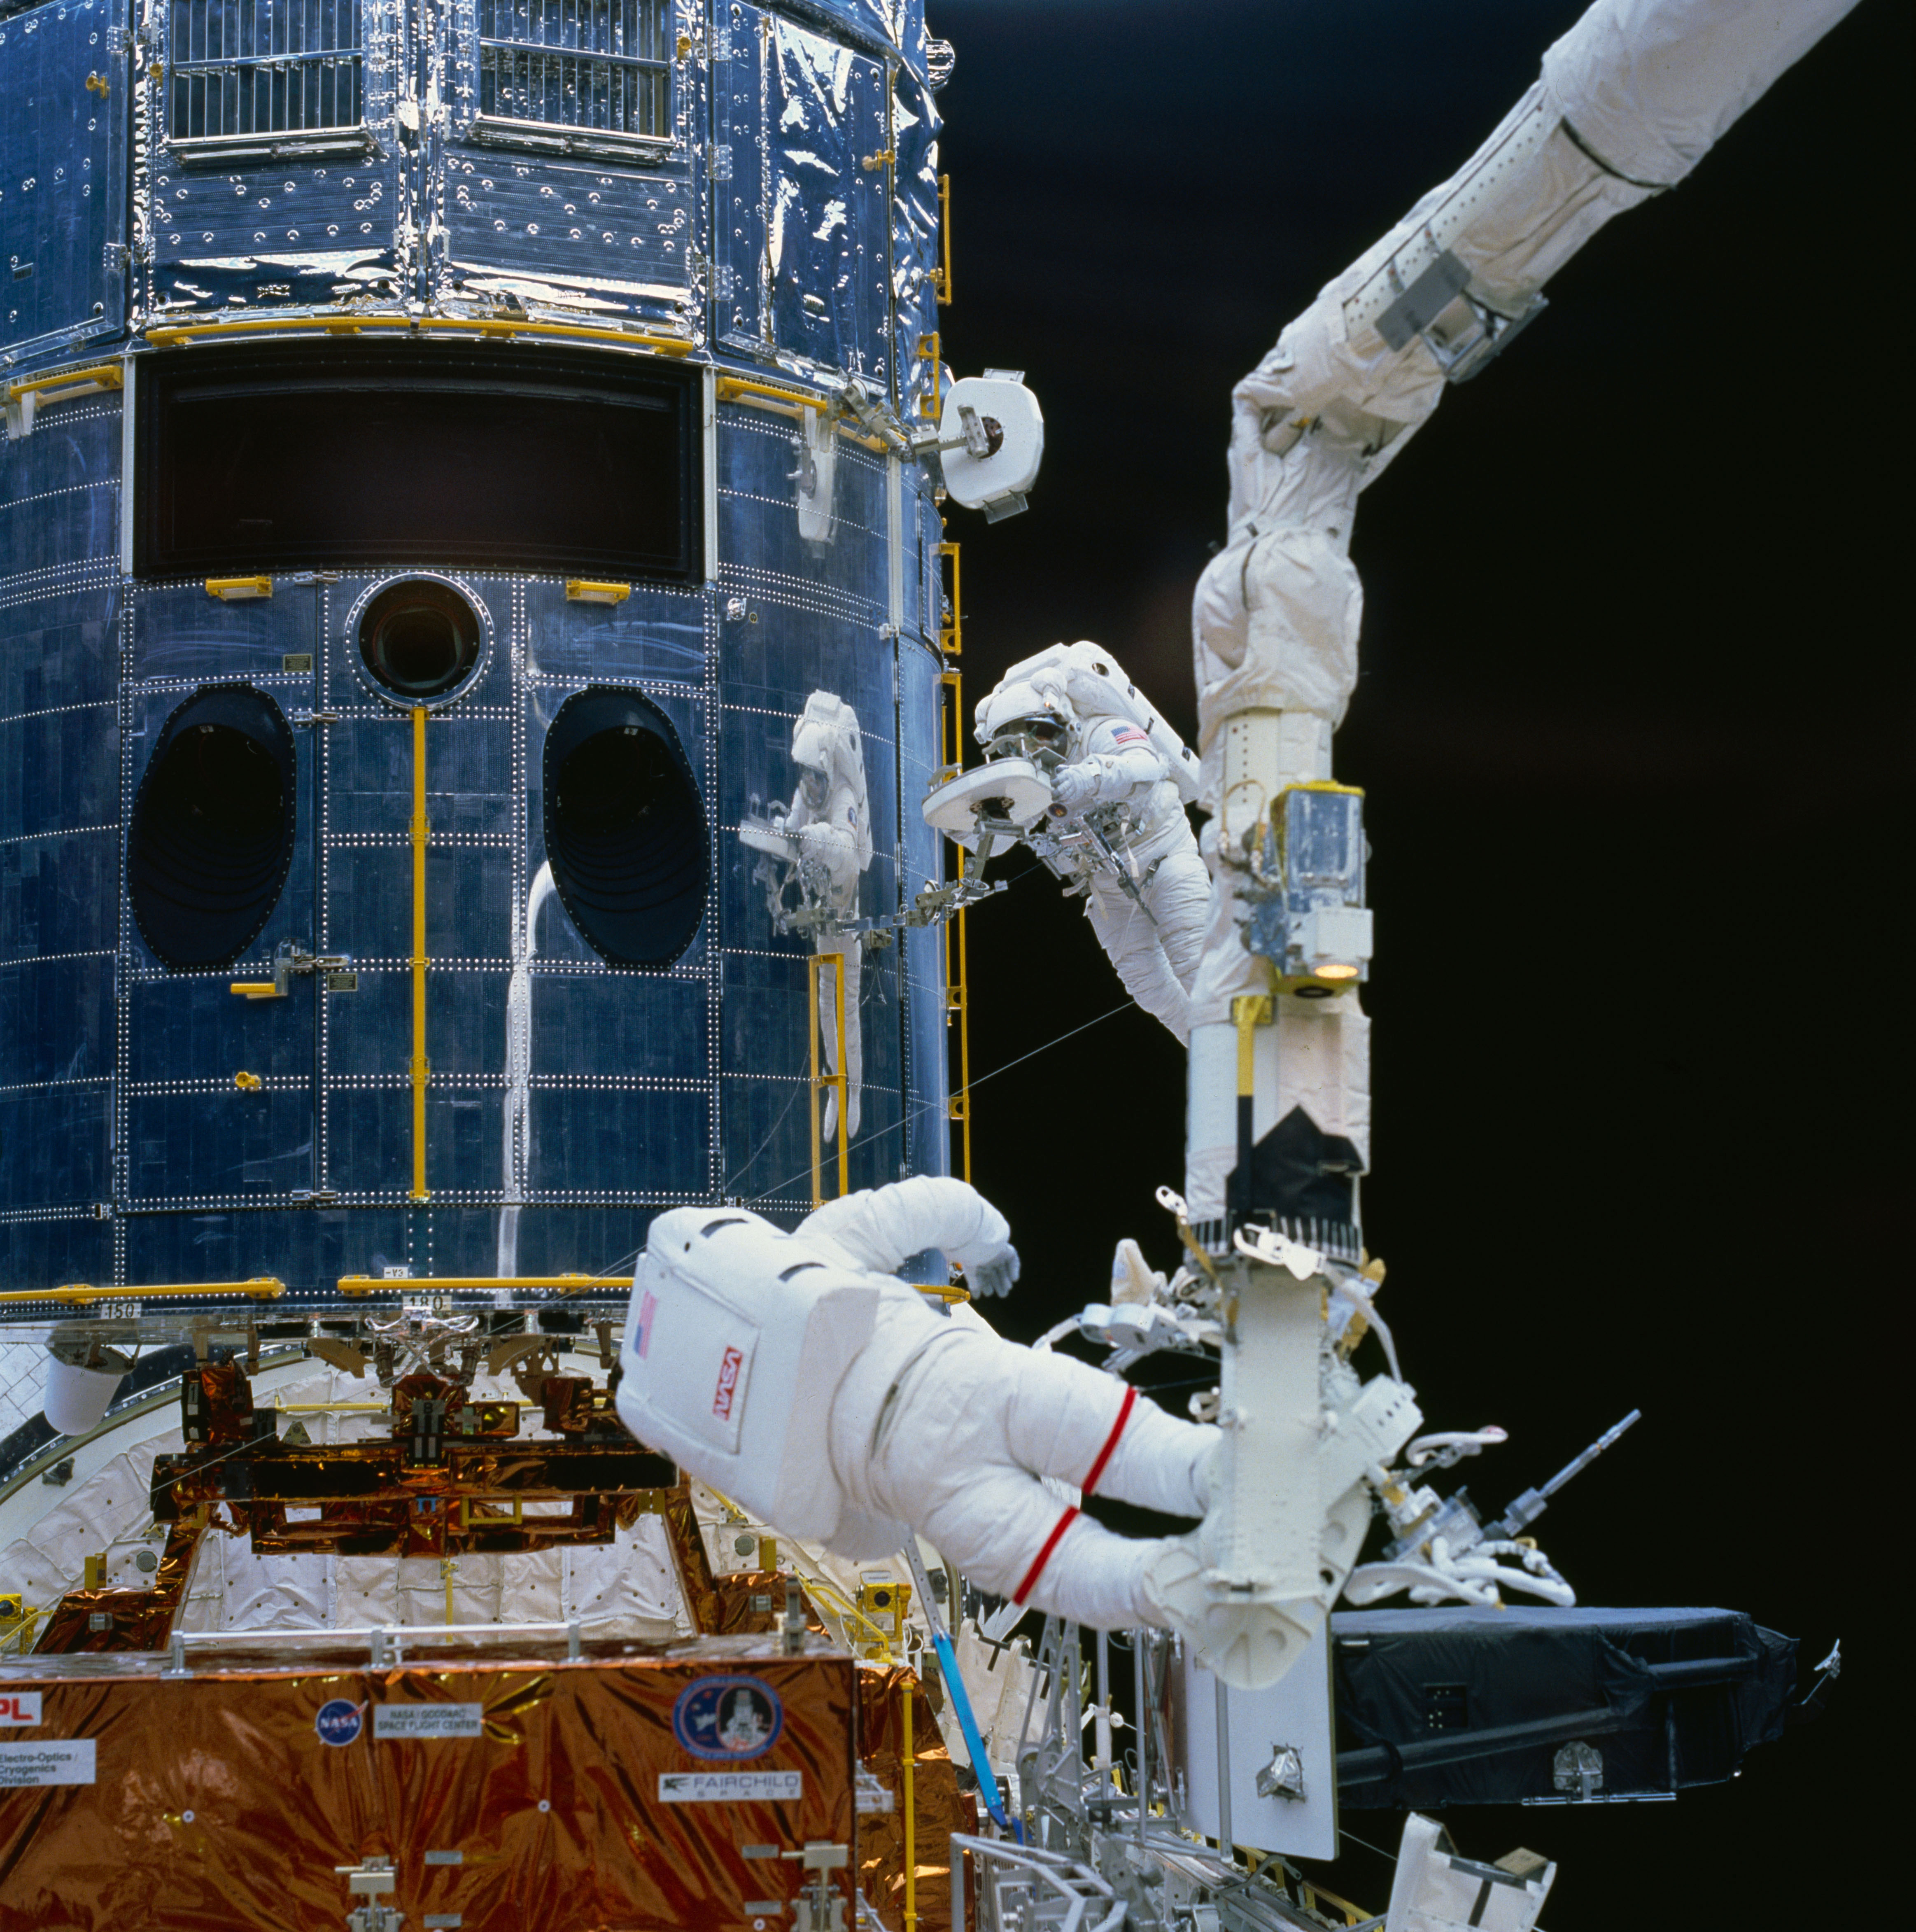 Astronaut Story Musgrave (top right center) works with a restraint device near the Hubble Space Telescope during the first of five STS-61 EVAs. Fellow NASA astronaut Jeffrey Hoffman is seen at the bottom of the frame preparing to work with fuse plugs. Credit: NASA